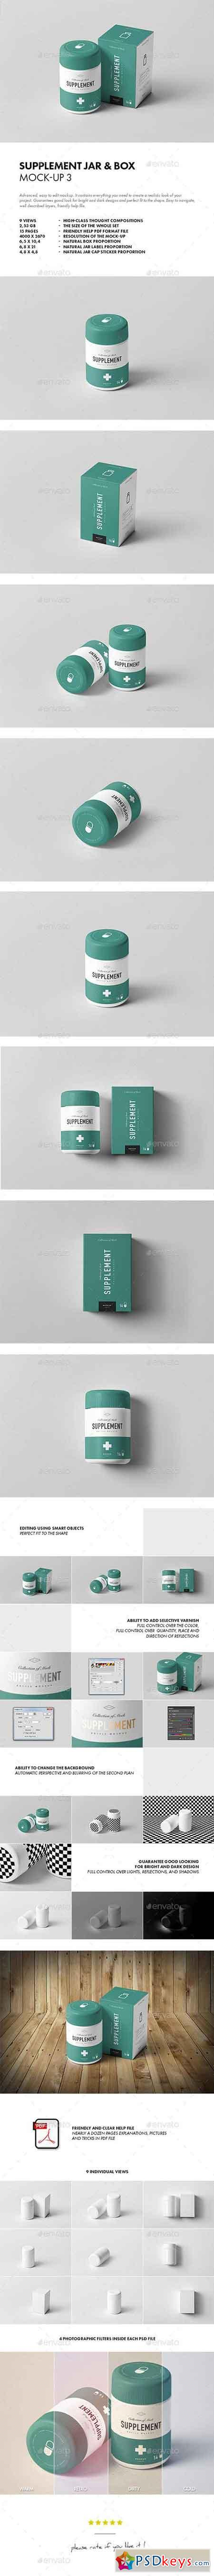 Supplement Jar & Box Mock-Up 3 20780871